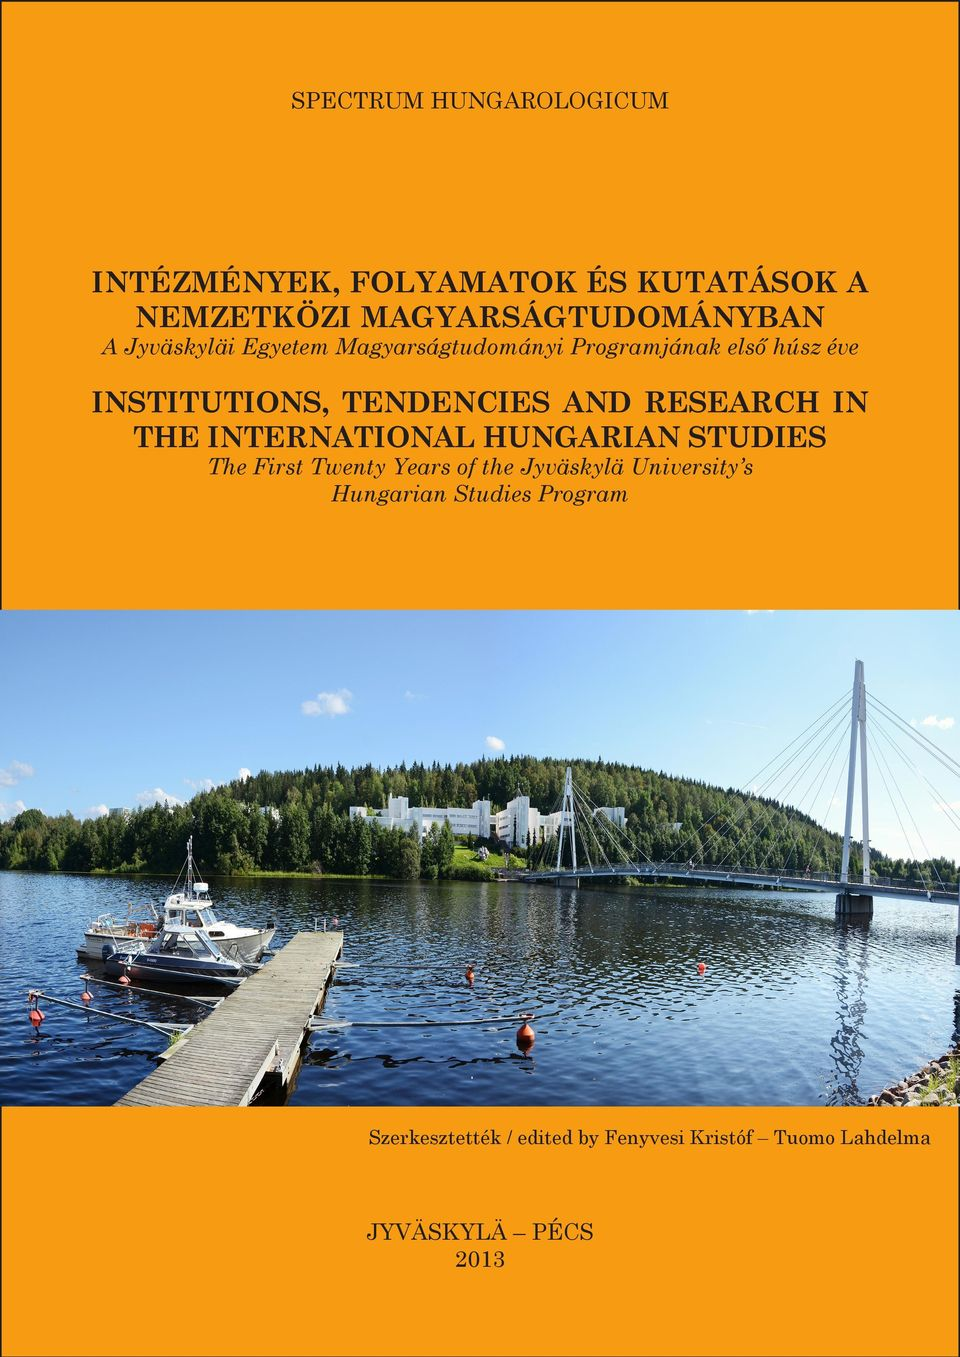 RESEARCH IN THE INTERNATIONAL HUNGARIAN STUDIES The First Twenty Years of the Jyväskylä University